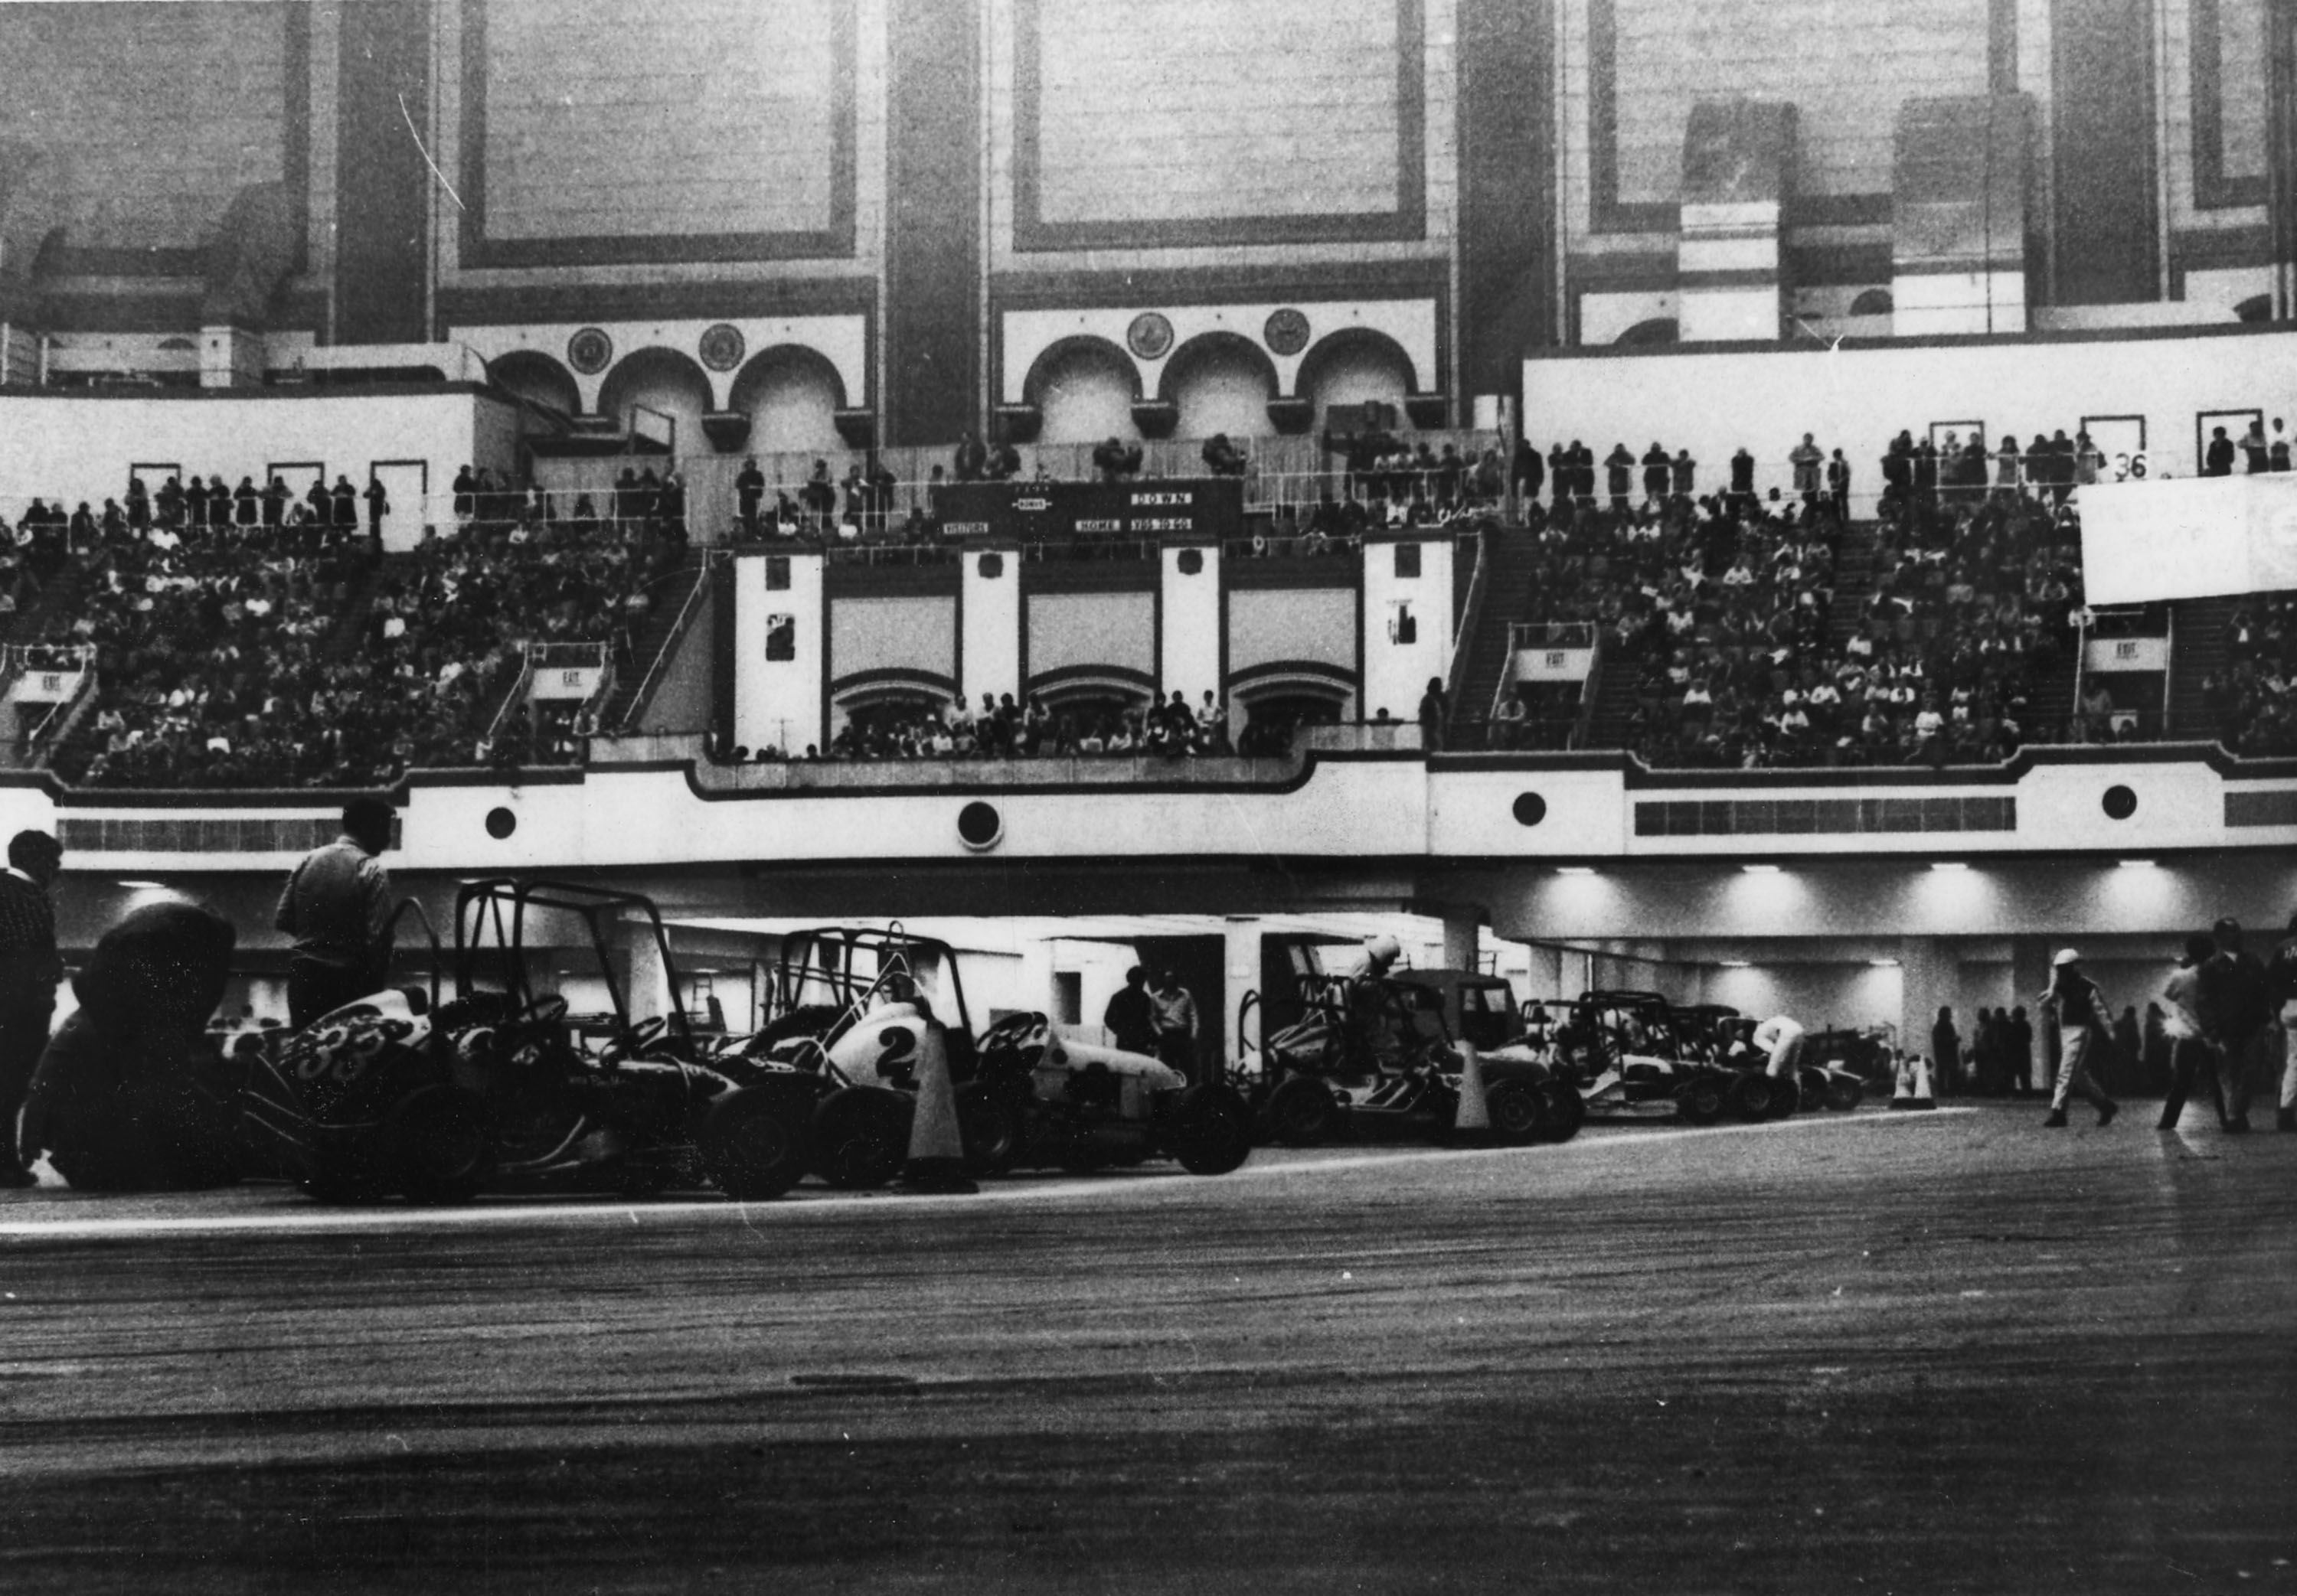 The floor of Convention Hall (1970 photo) accommodated a full 1/5 mile concrete oval plus the entire pit area through the 1981 season. All the fans found stadium seating in the balcony. Lighting on the track was perfect and the famous Convention Hall pipe organ played during breaks in the racing action. Today's indoor track is about half the original size. Source: EARHS